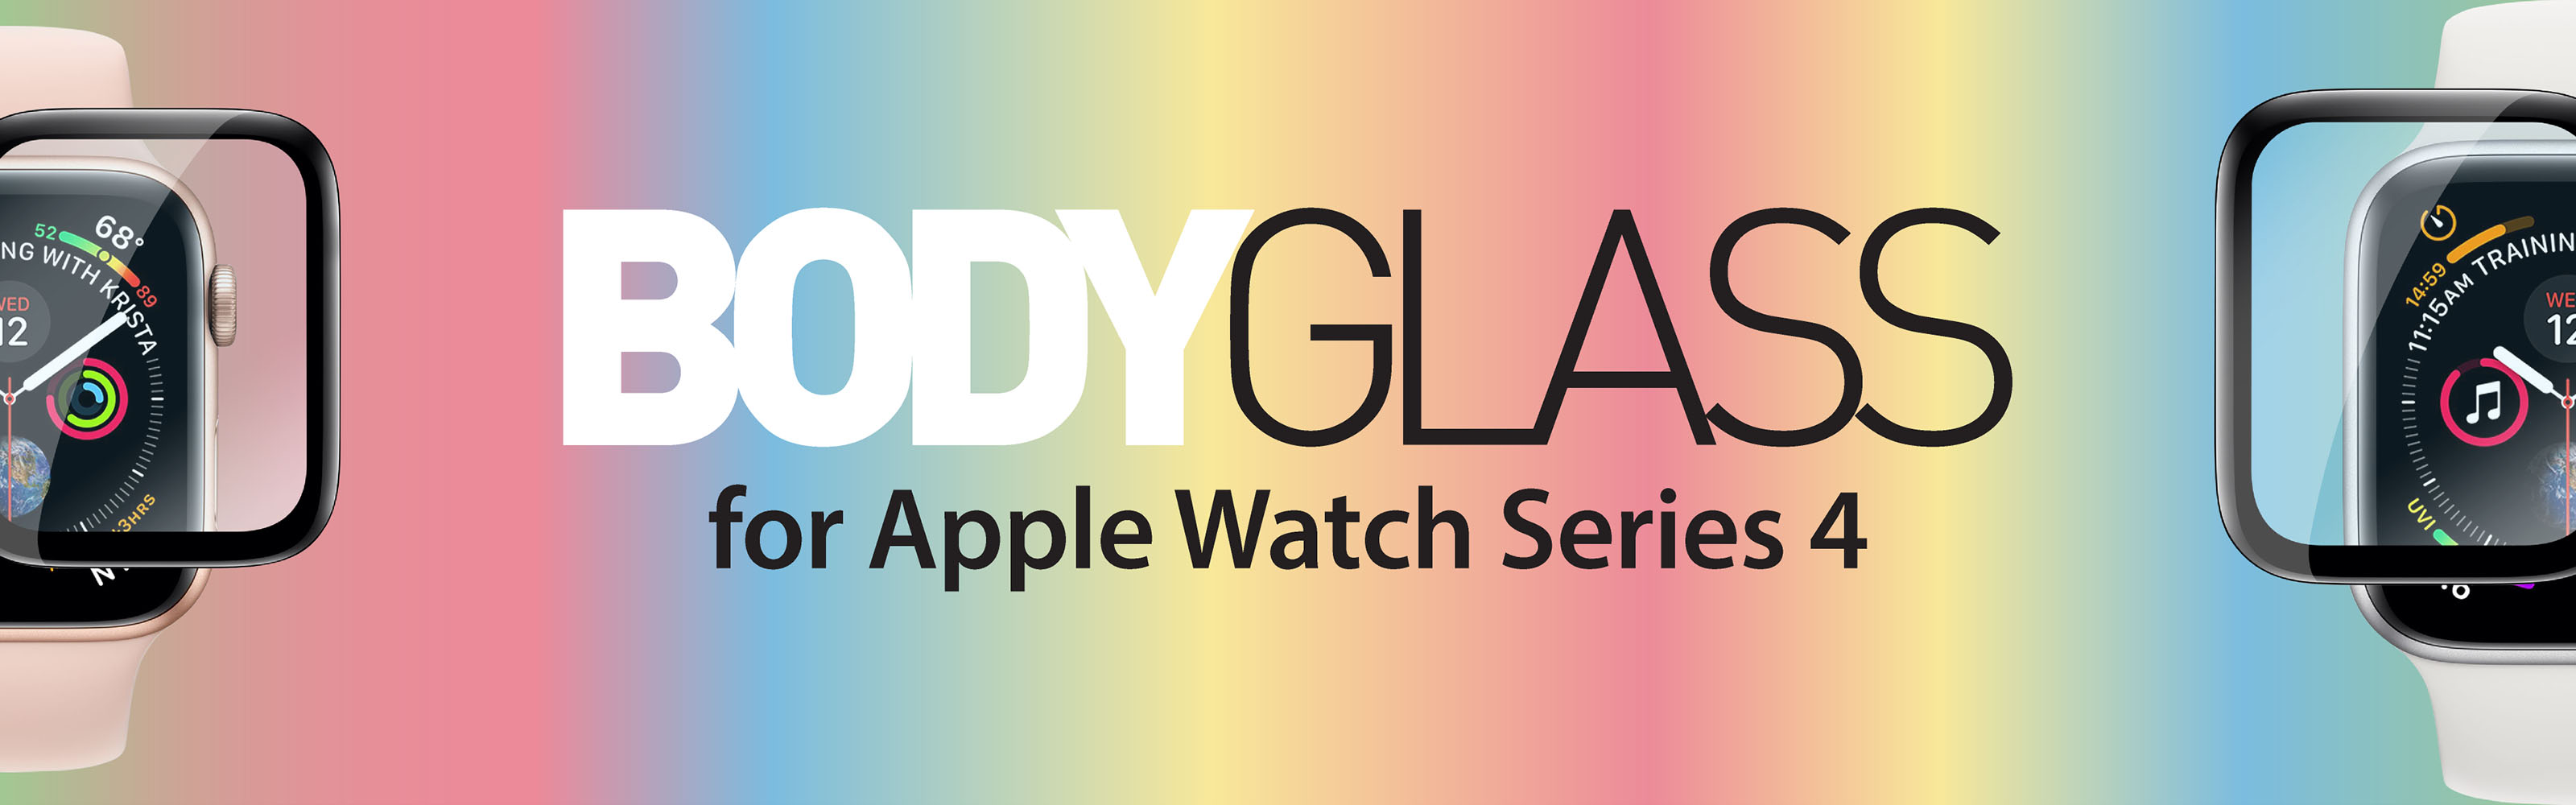 Torrii introduces BODYGLASS for Apple Watch Series 4